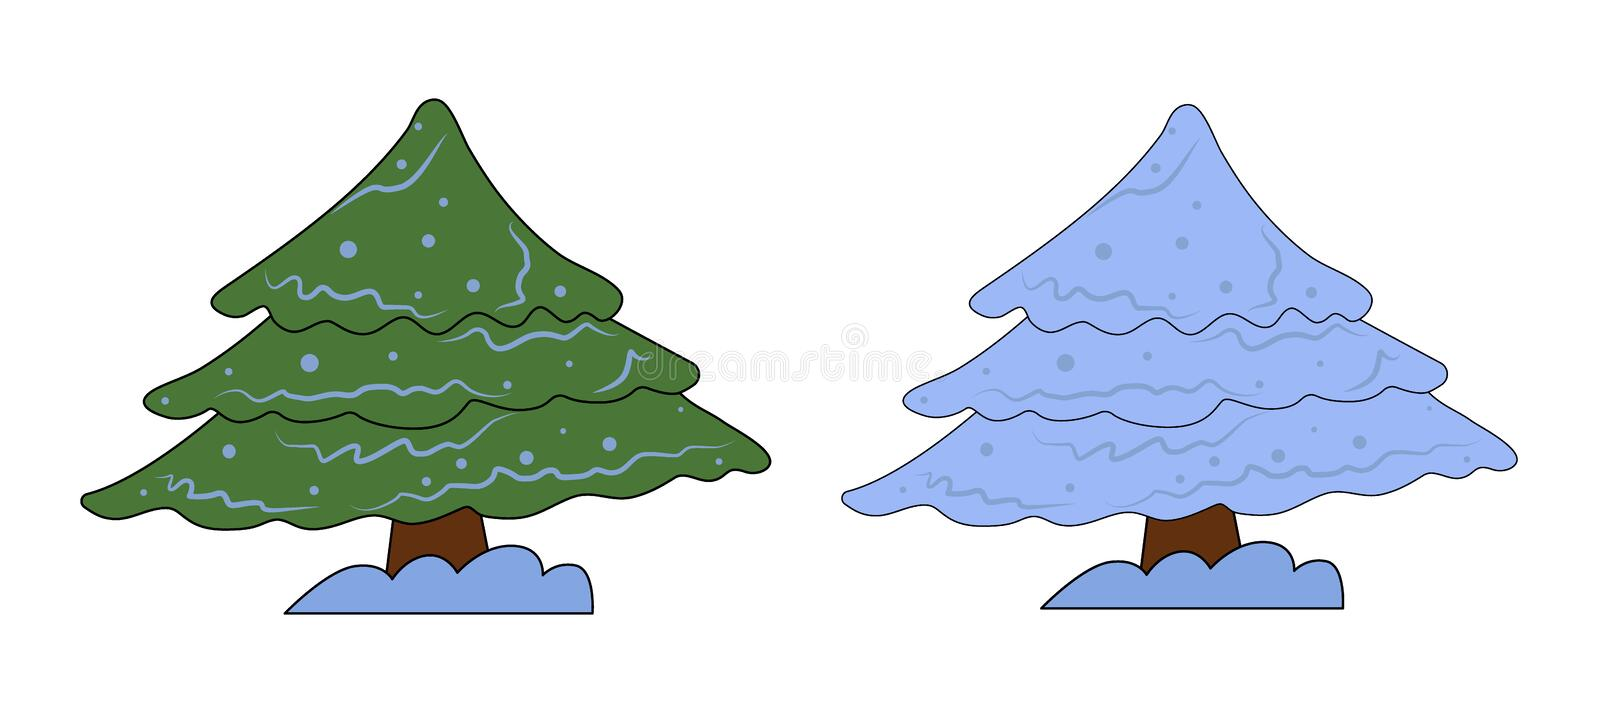 Cartoon Evergreen Trees Stock Illustrations 1 232 Cartoon Evergreen Trees Stock Illustrations Vectors Clipart Dreamstime Bright colored cartoon layouts with pointy tips and thick outlines. cartoon evergreen trees stock